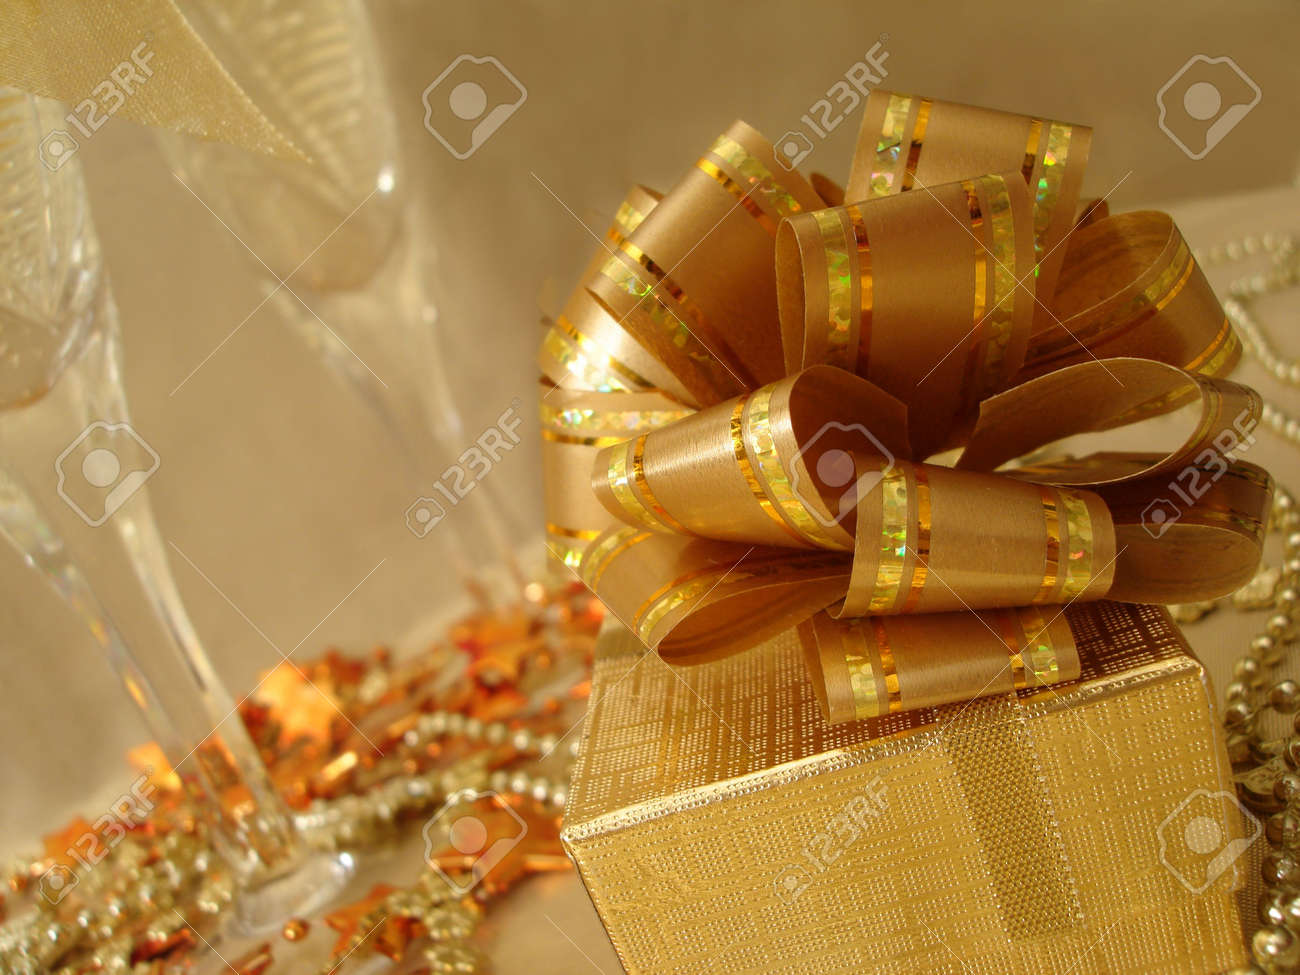 golden gift box on a beautiful background with champagne glasses Stock Photo - 763802